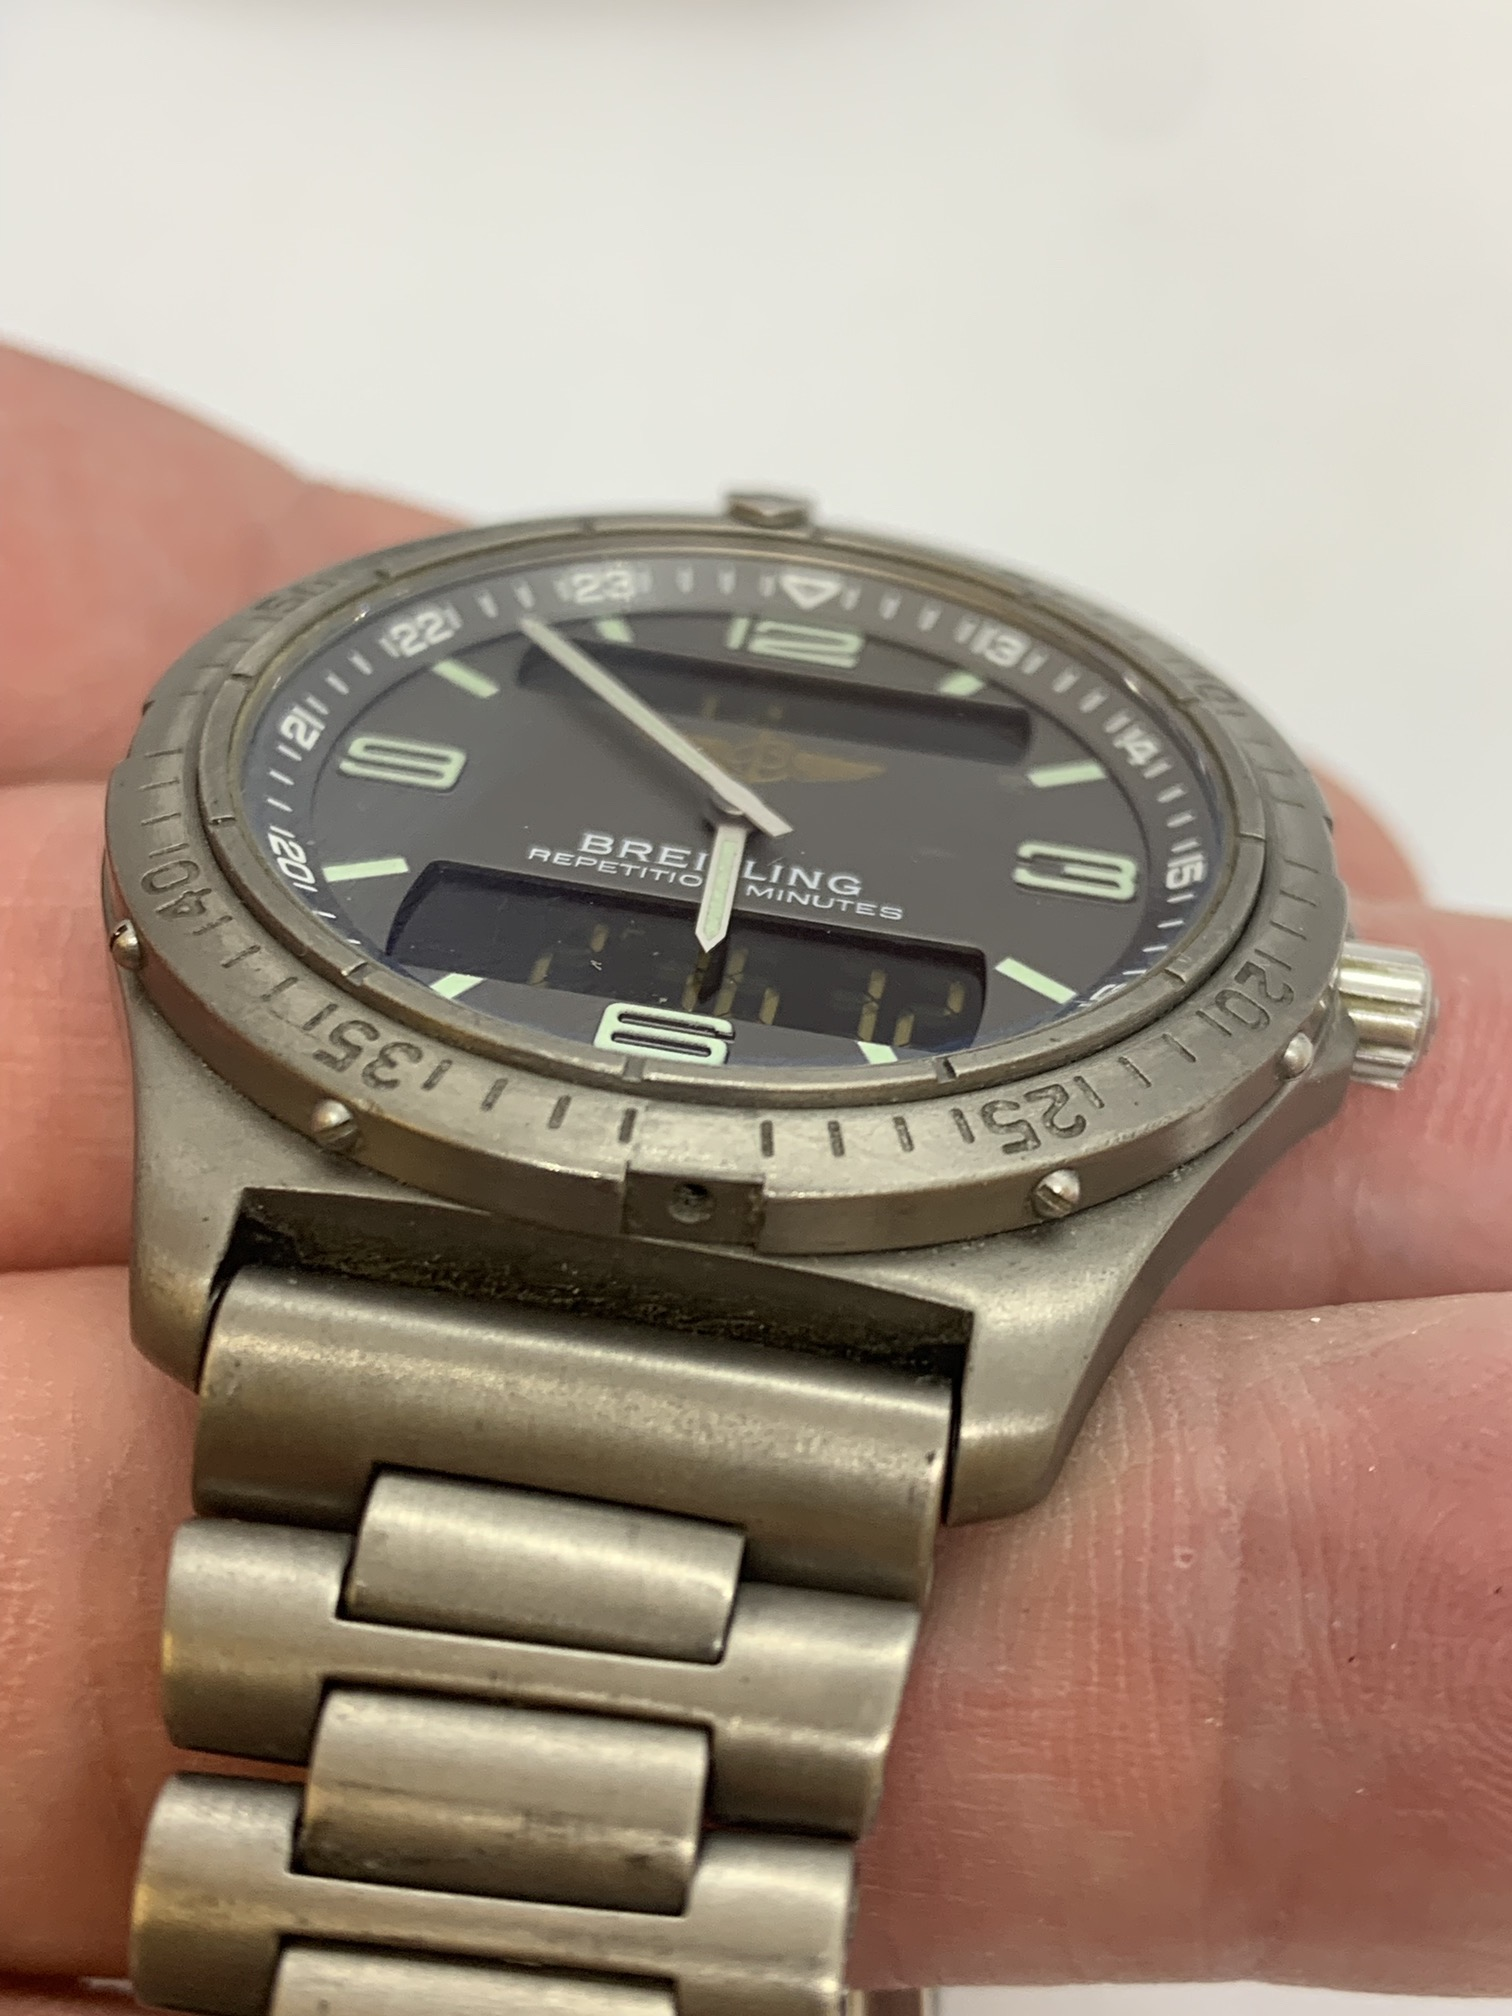 BREITLING TITANIUM WATCH A/F - Image 13 of 15